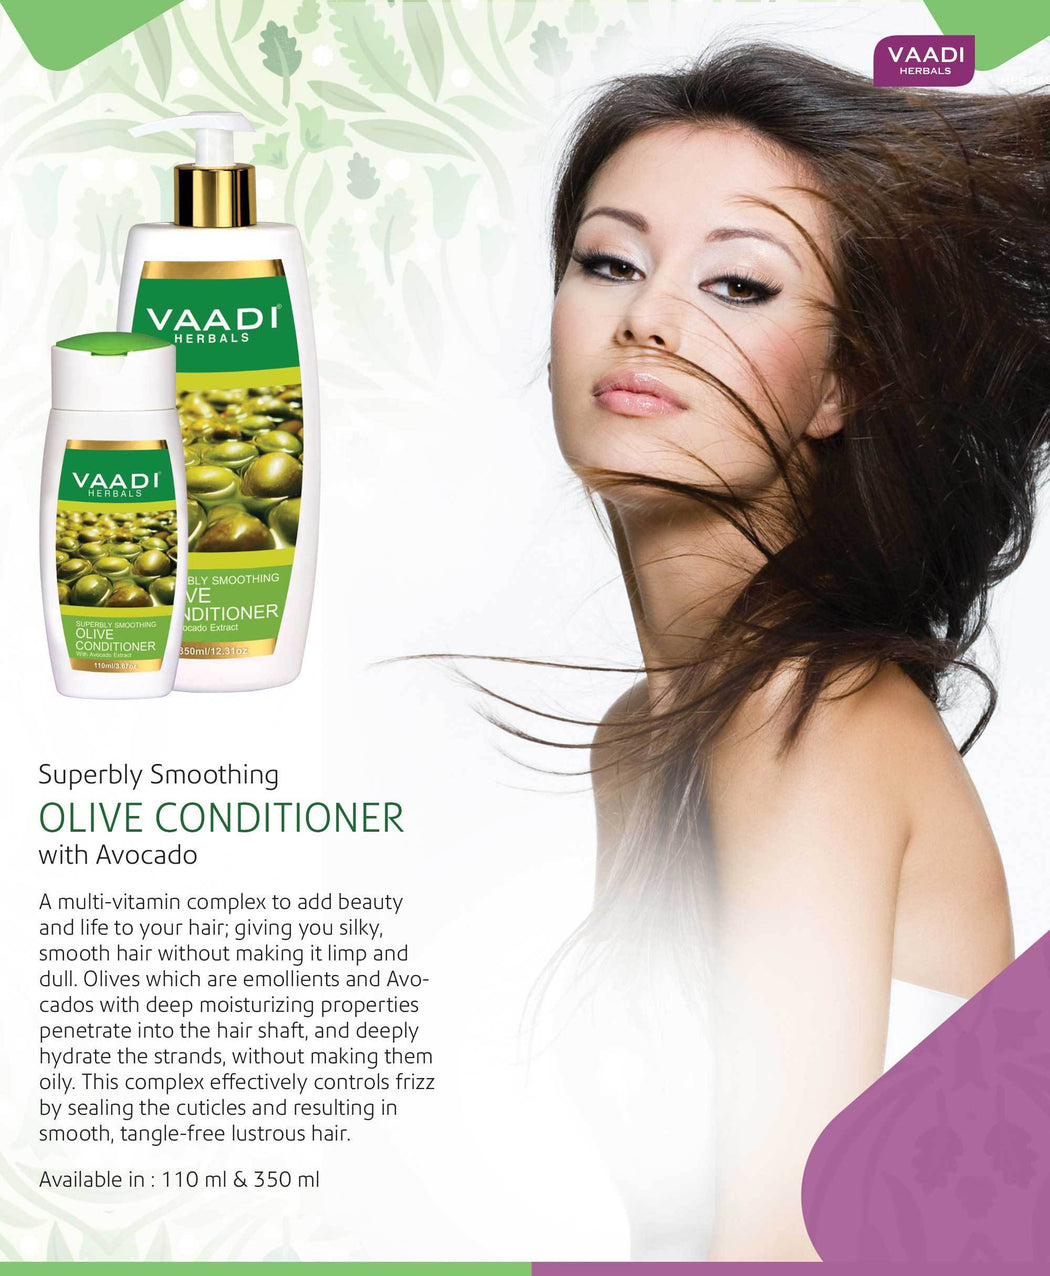 Multi Vitamin Organic Rich Olive Conditioner with Avocado Extract - Makes Hair Lustrous - Adds Bounce to Hair (3 x 110 ml/ 4 fl oz)